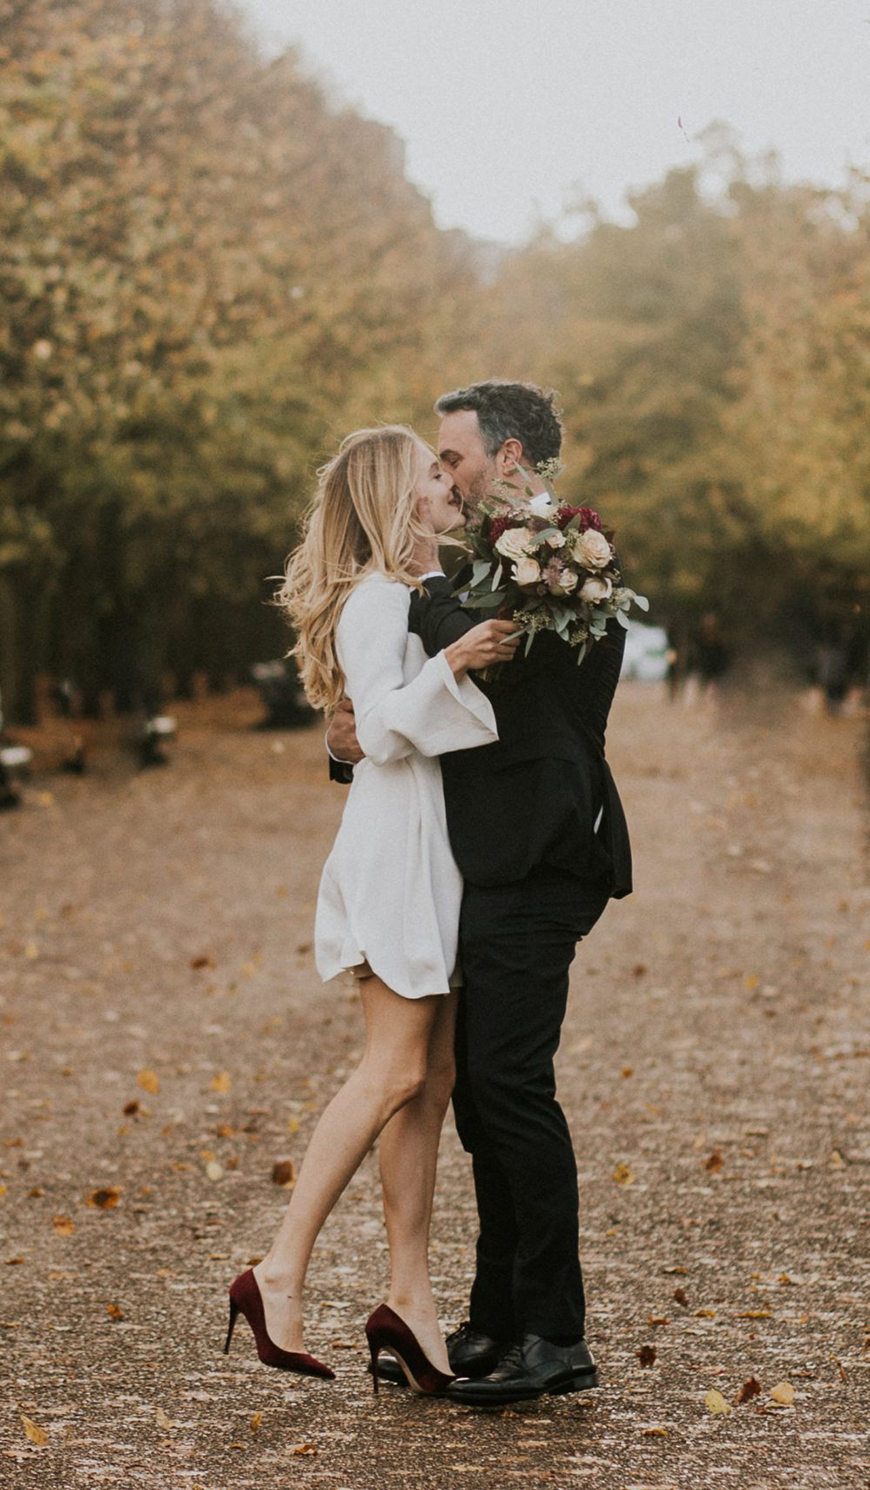 10 Things You Don't Actually Need For Your Wedding - Guests | CHWV